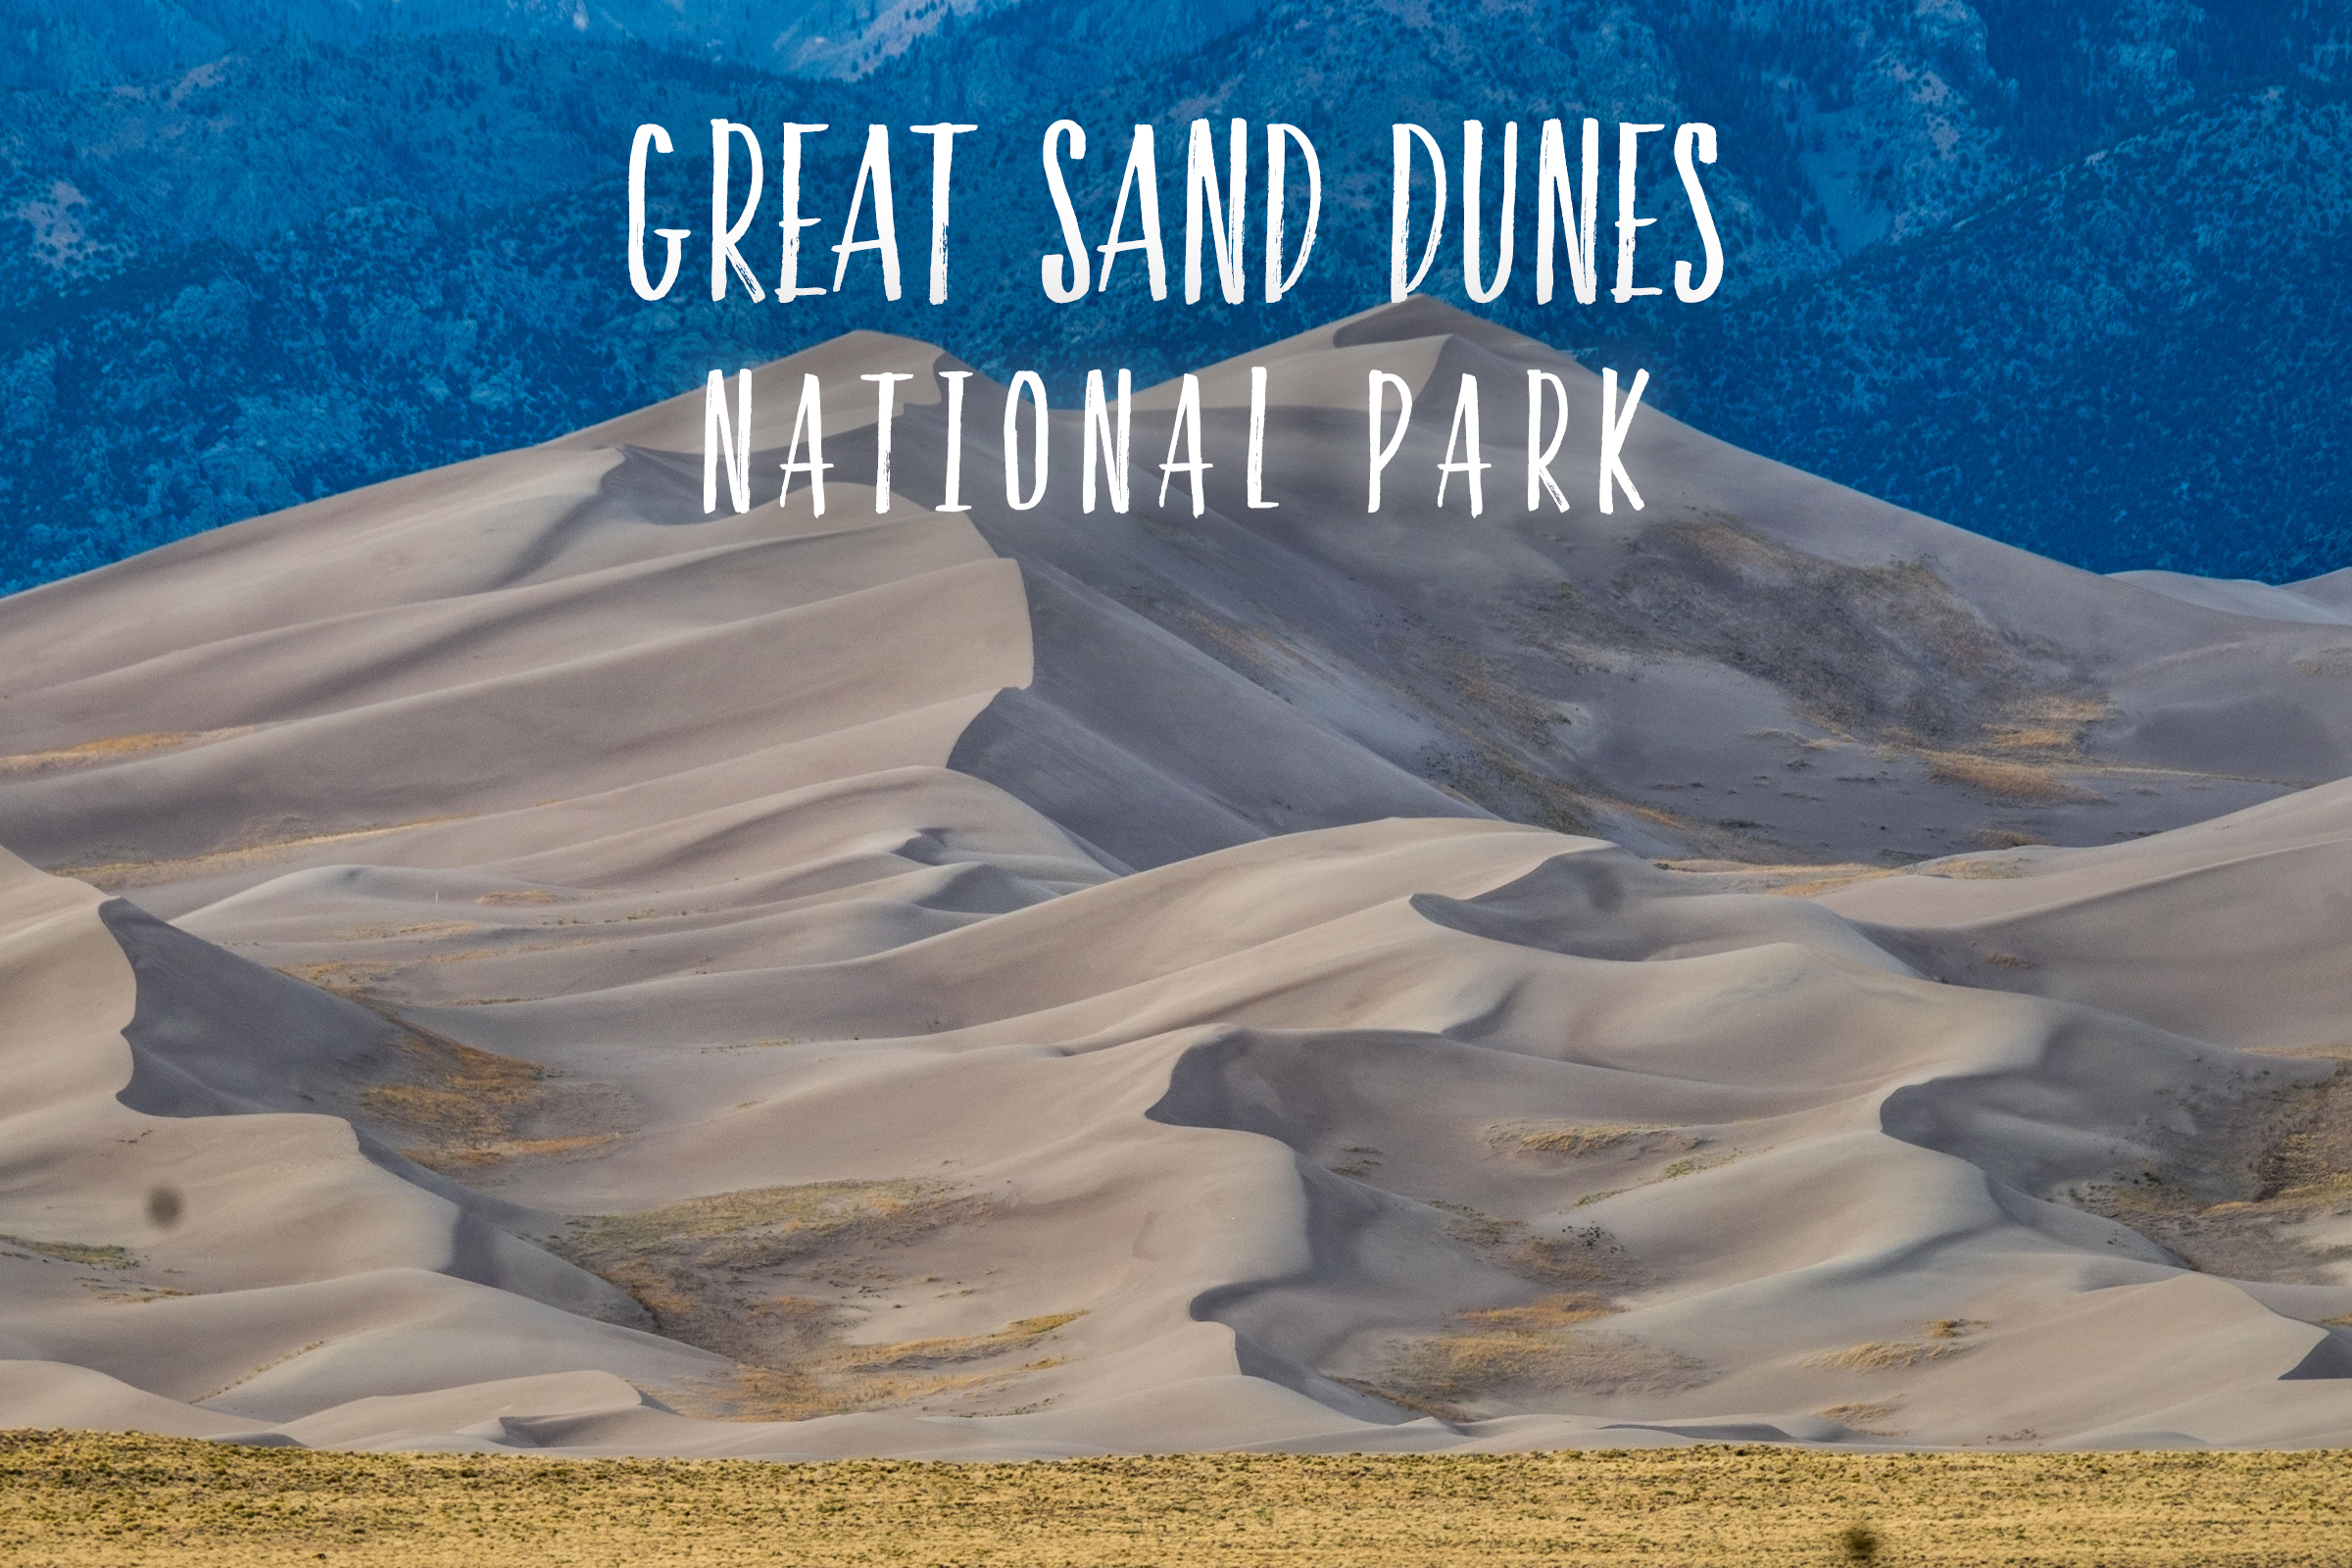 59in52_np-page_great-sand-dunes.jpg